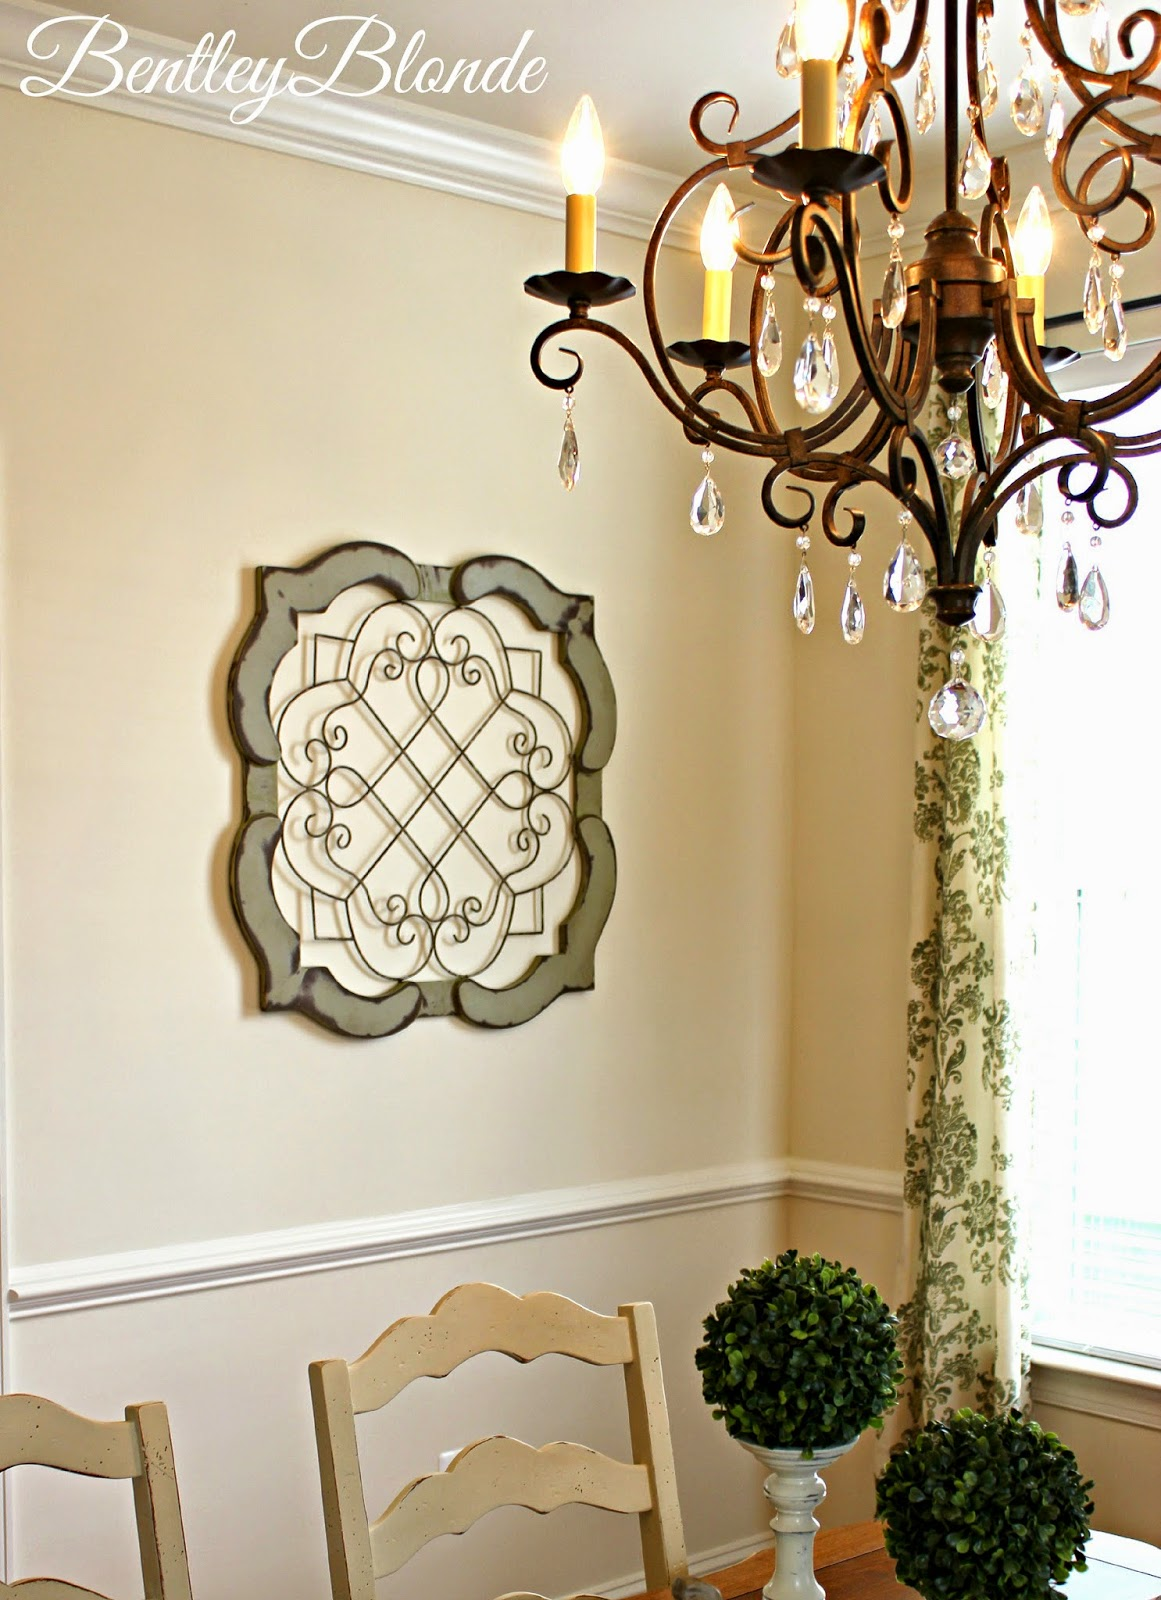 Bentleyblonde december 2014 murray feiss chateau collection chandelier from lampsplus aloadofball Gallery